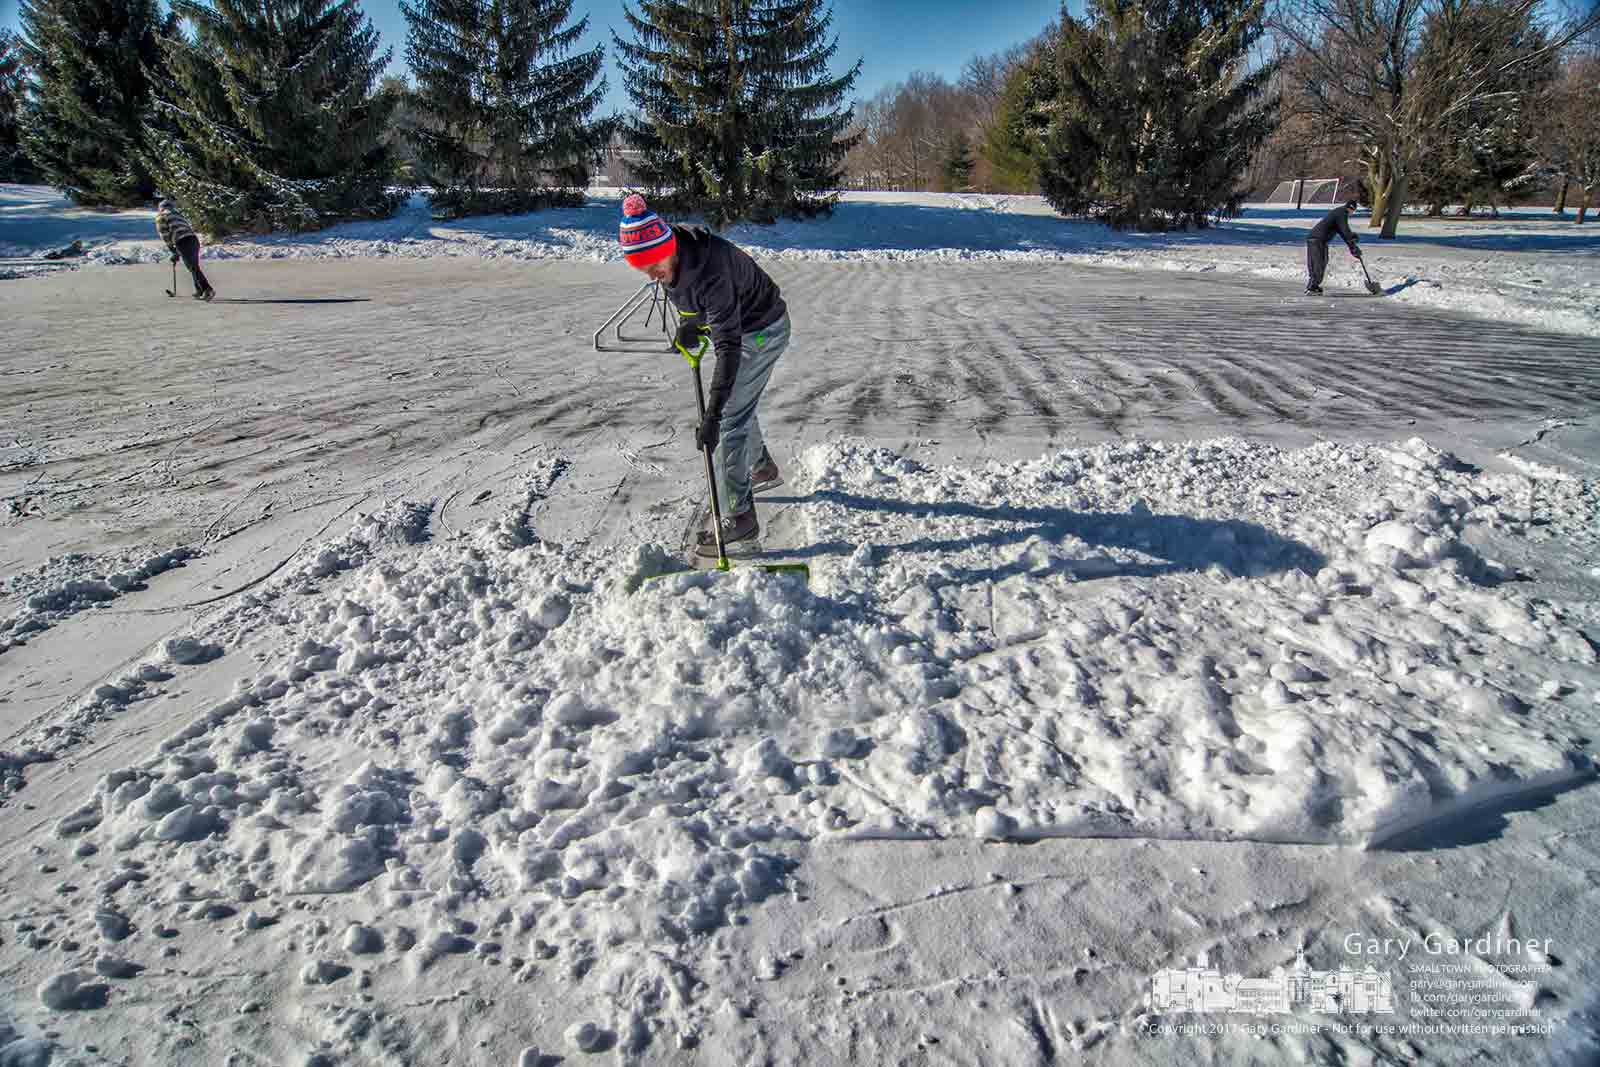 A skater clears snow from the ice skating rink now open at Metzger Park in Westerville. My Final Photo for Dec. 31, 2017.